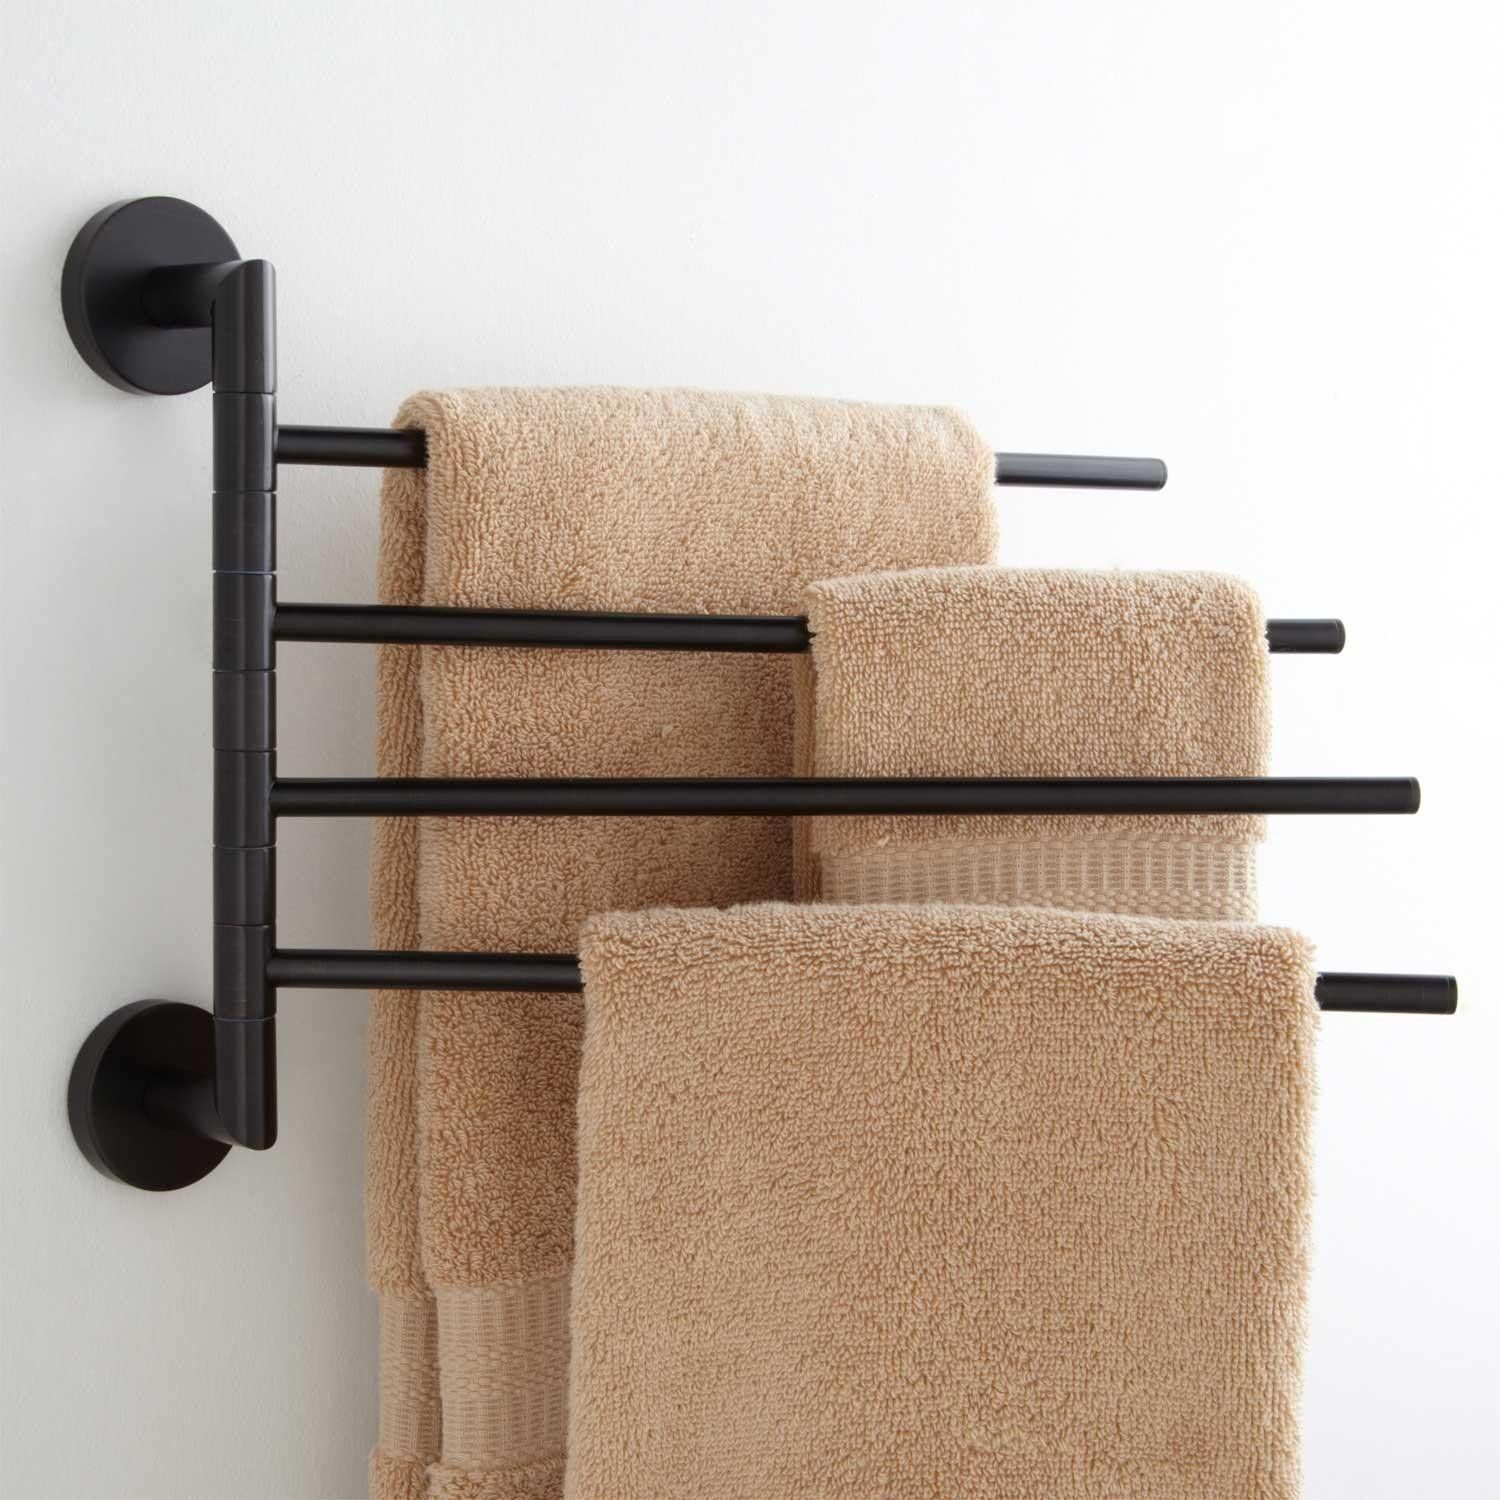 colvin quadruple swing arm towel bar - Bathroom Accessories Towel Rail